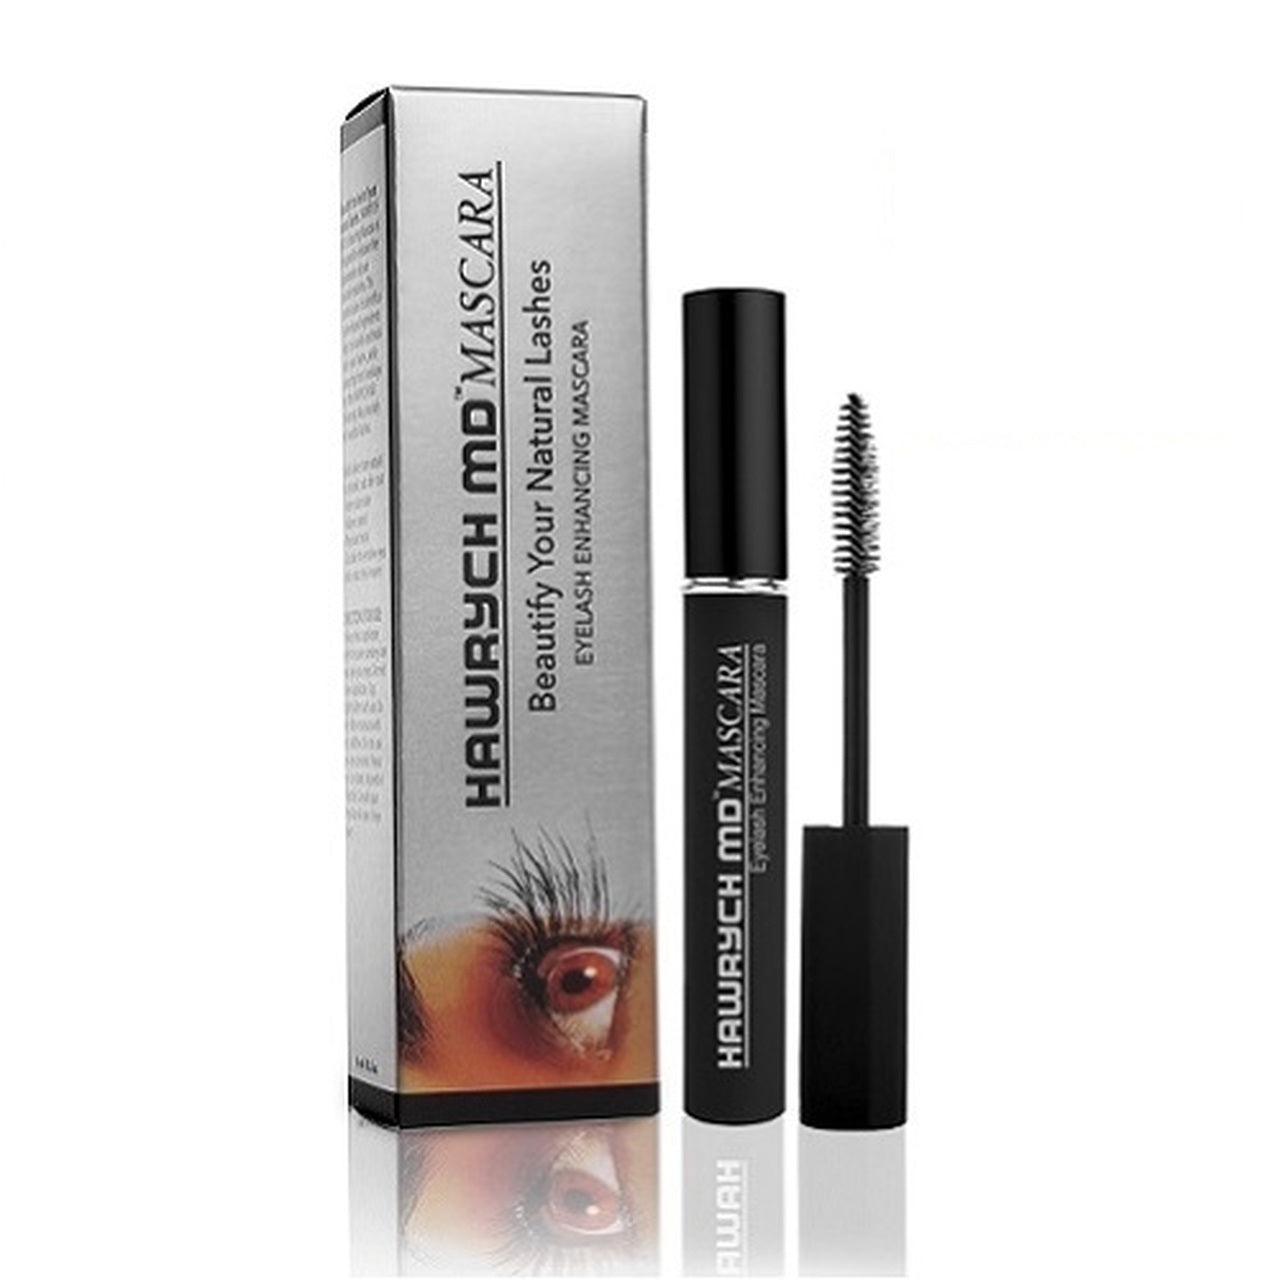 HAWRYCH MD Eyelash Enhancing Mascara Retail